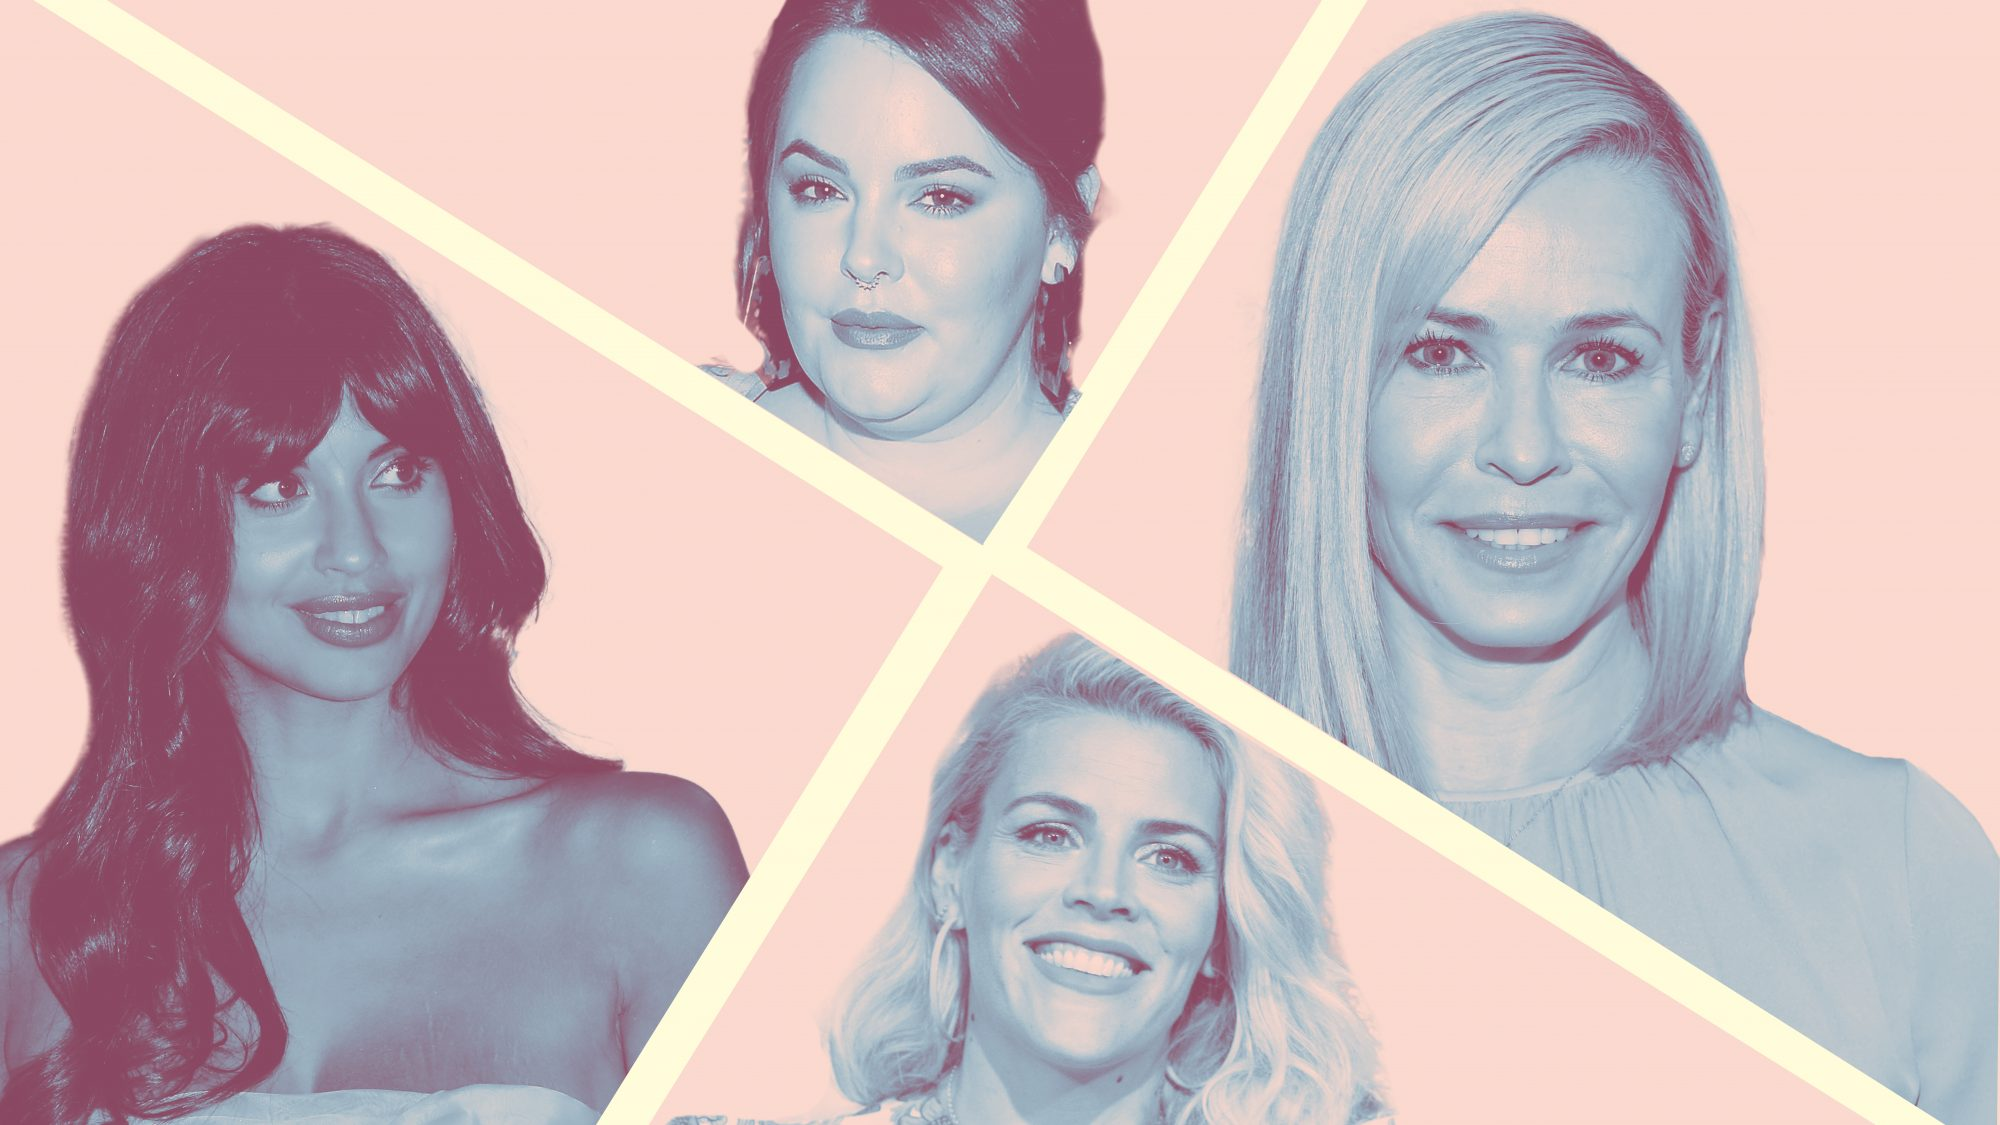 19 Celebrities Who Have Shared Their Abortion Stories to Help End the Stigma